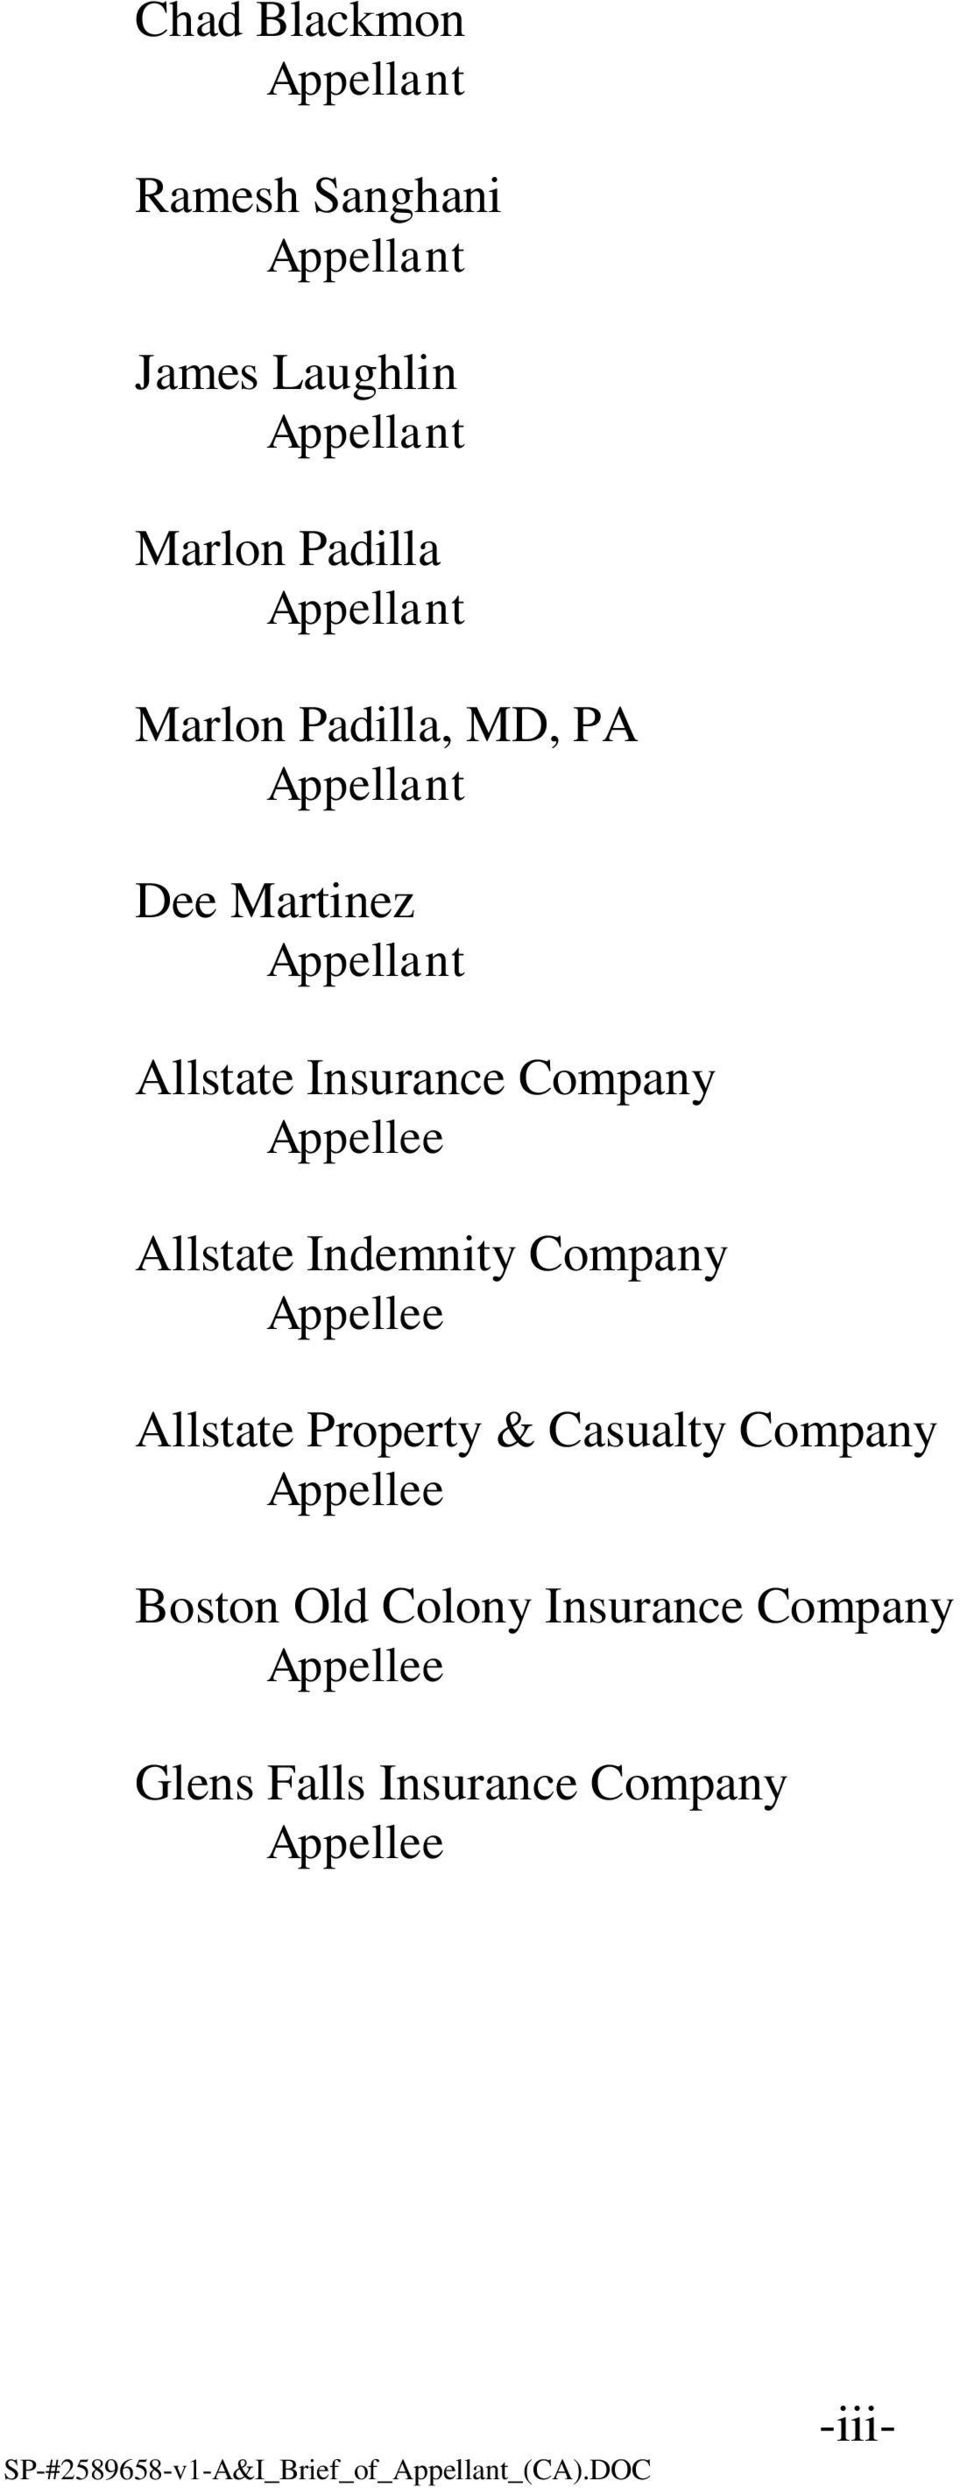 Company Appellee Allstate Indemnity Company Appellee Allstate Property & Casualty Company